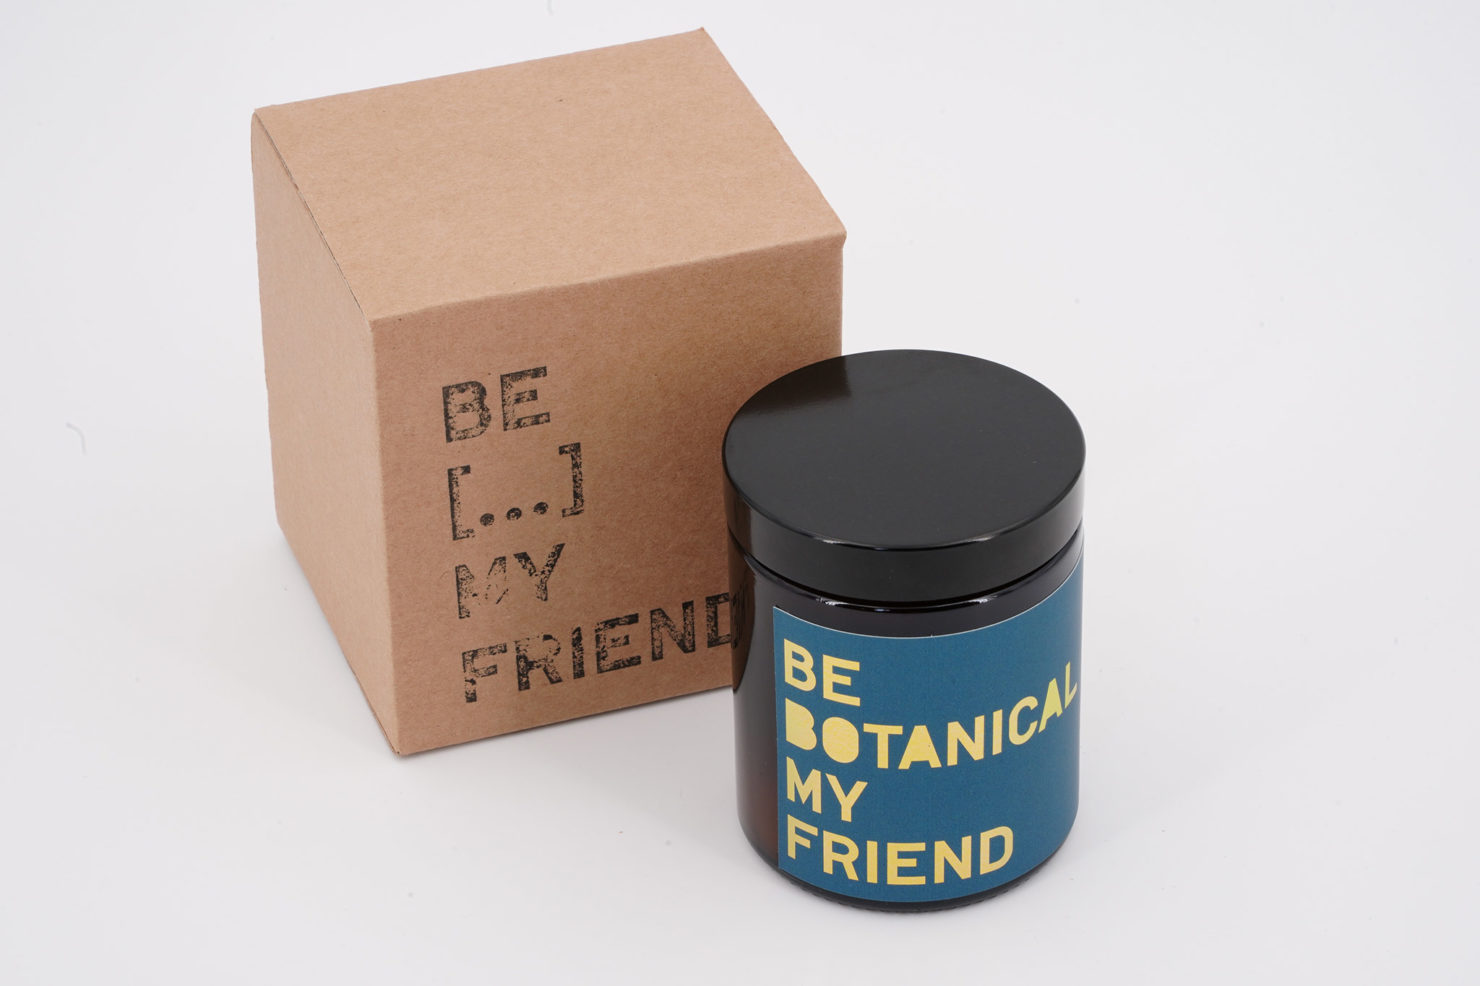 BE LIT&SCENT MY FRIEND BOTANICAL 180ML BE MY FRIEND